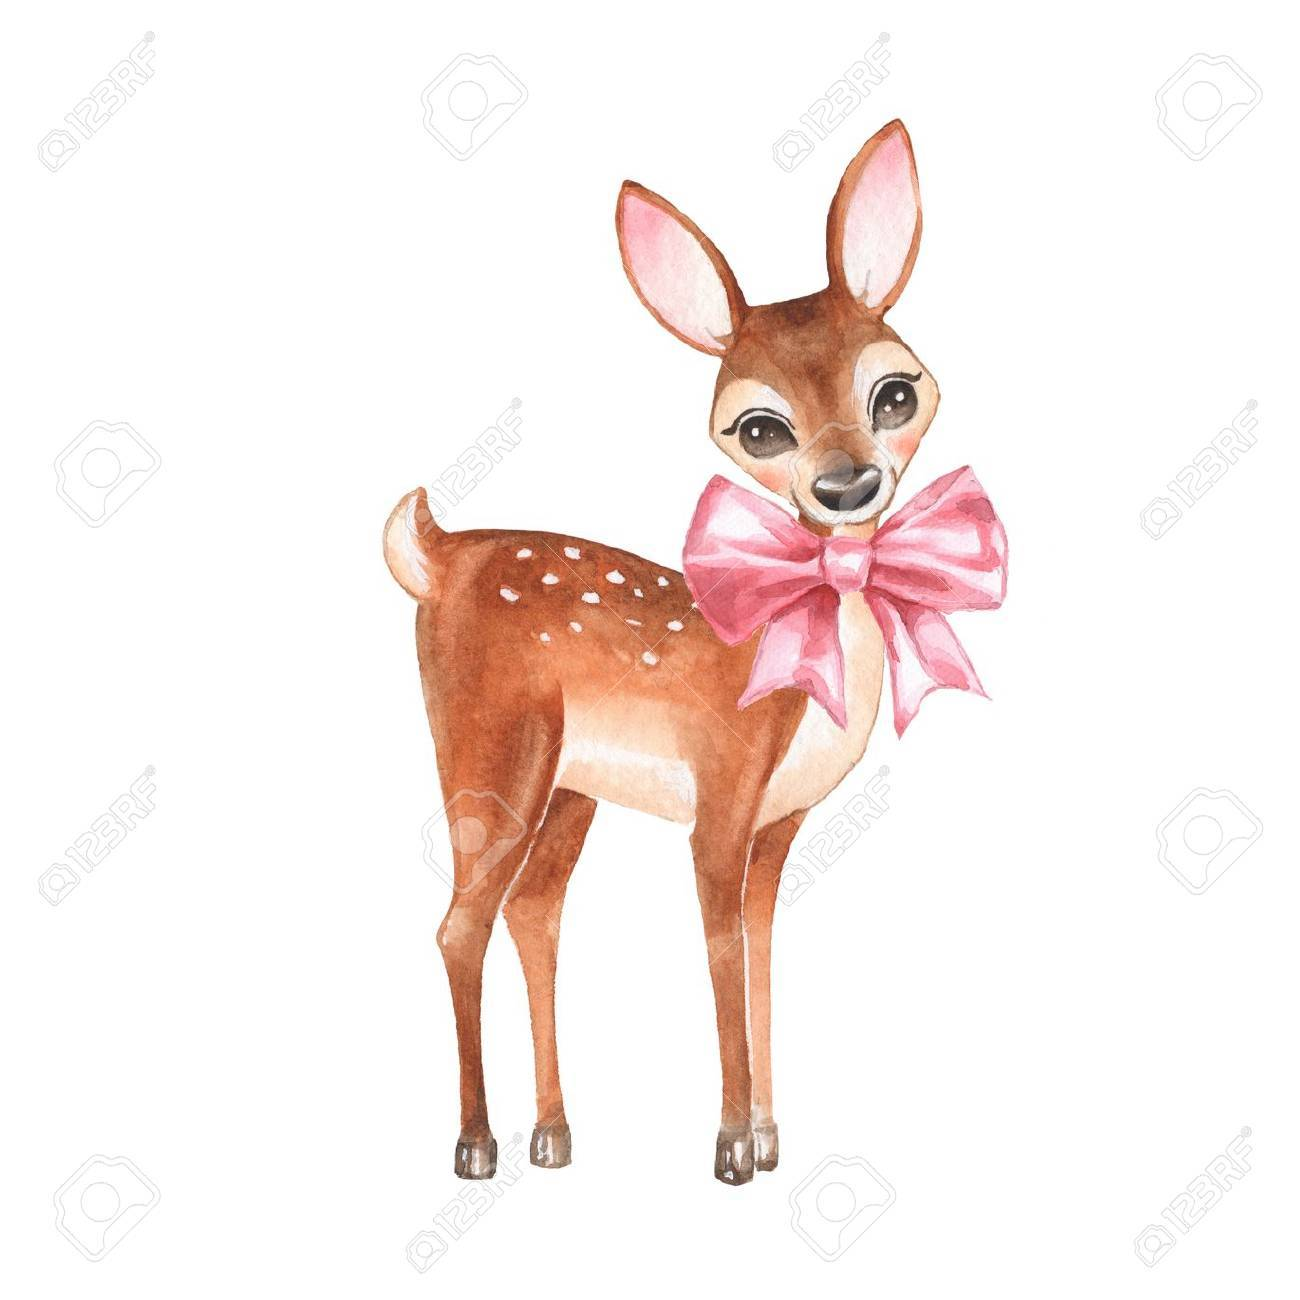 Baby Deer. Hand drawn cute fawn with a bow. Cartoon illustration, isolated on white. Watercolor painting - 68118350